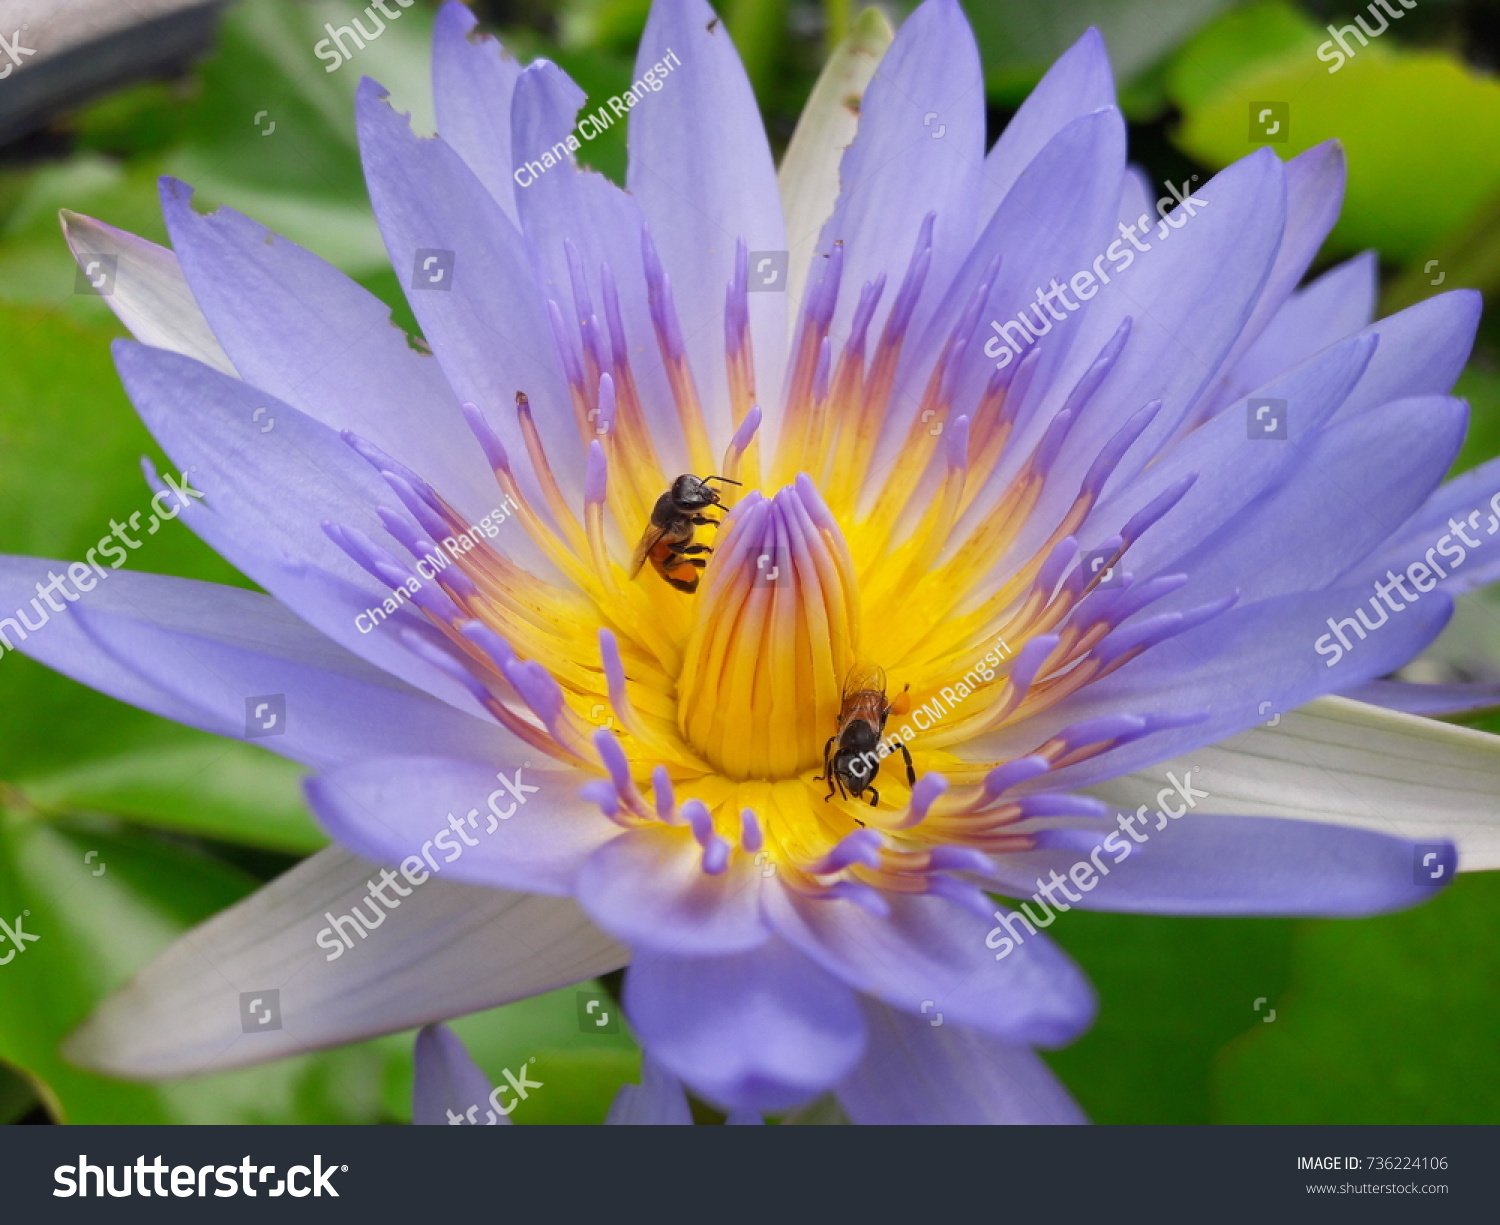 Bees Eating Lotus Flowers Stock Photo Edit Now 736224106